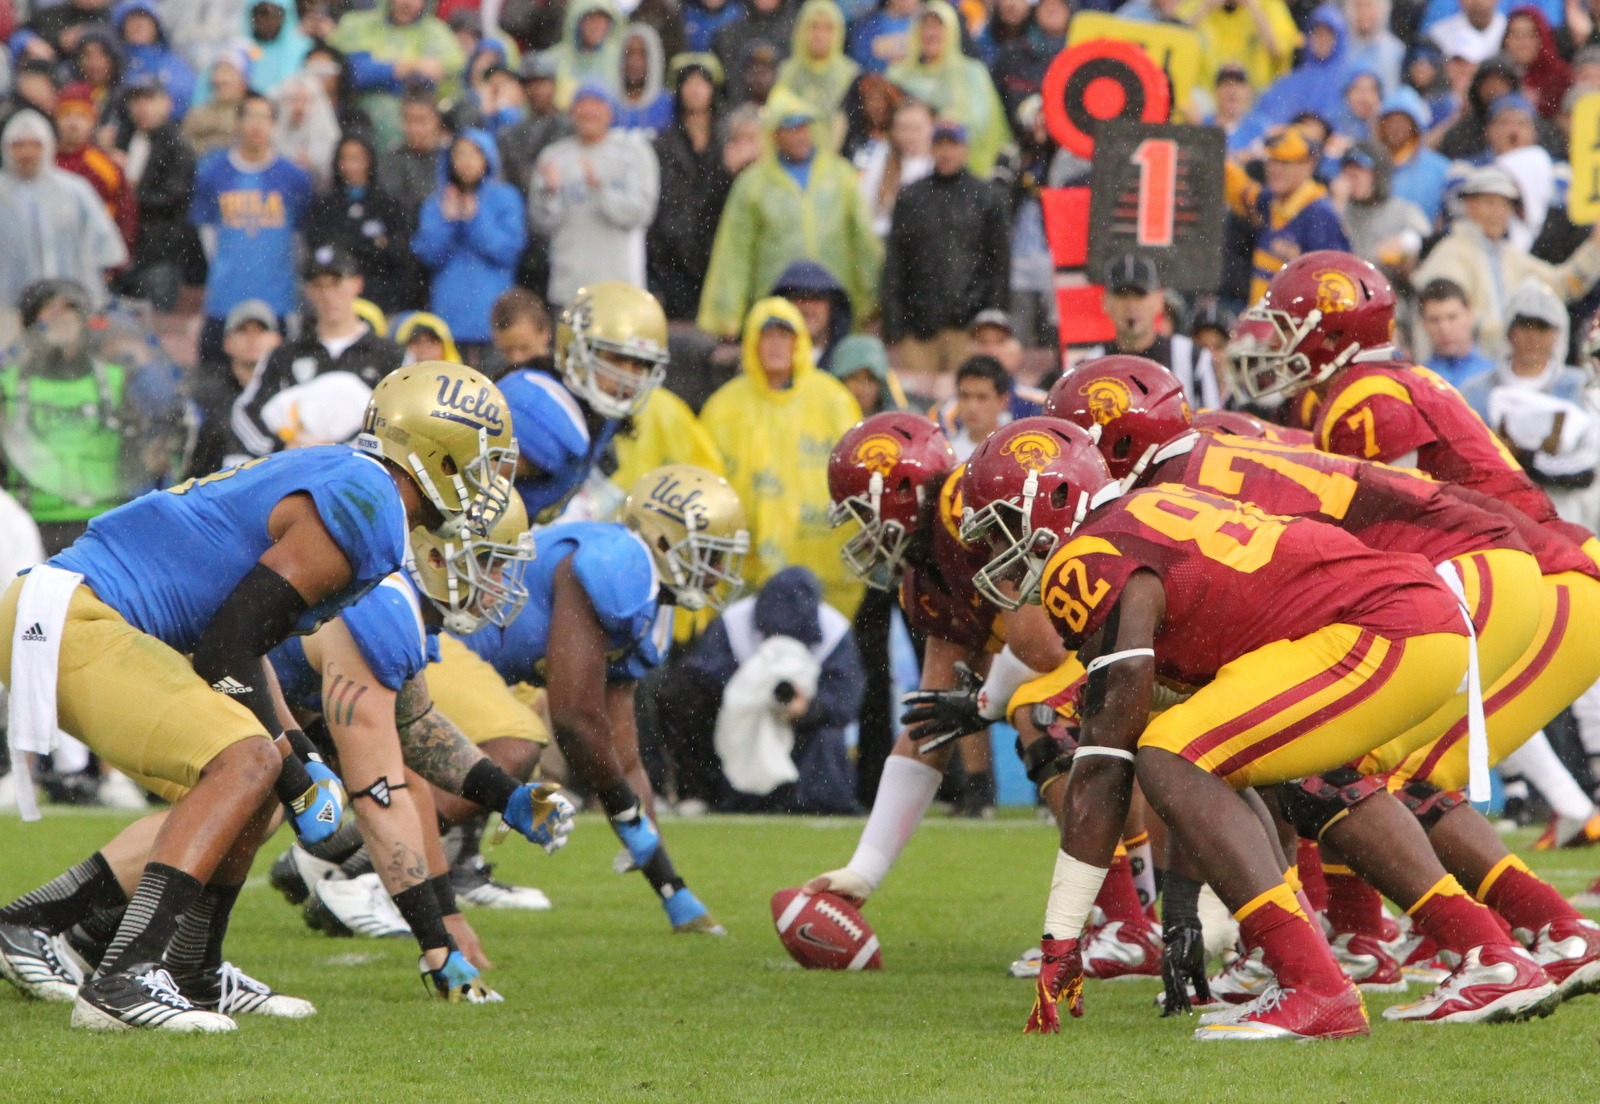 Top Five UCLA vs USC Football Games From the Last 25 Years.